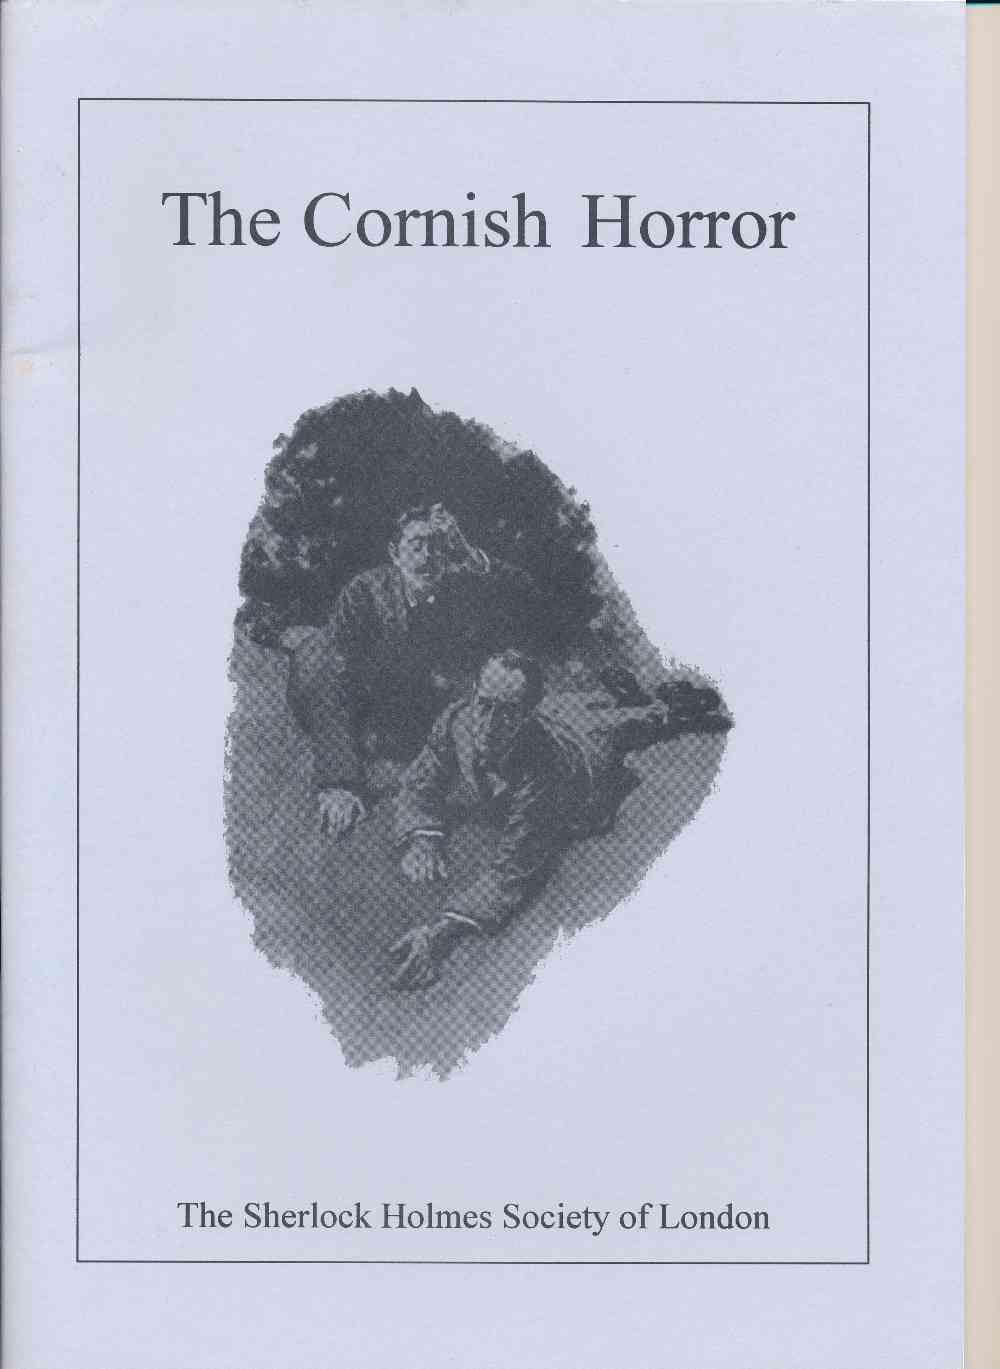 The Cornish horror : the Devil's Foot weekend : the Sherlock Holmes Society of London, 3-5 July 1998